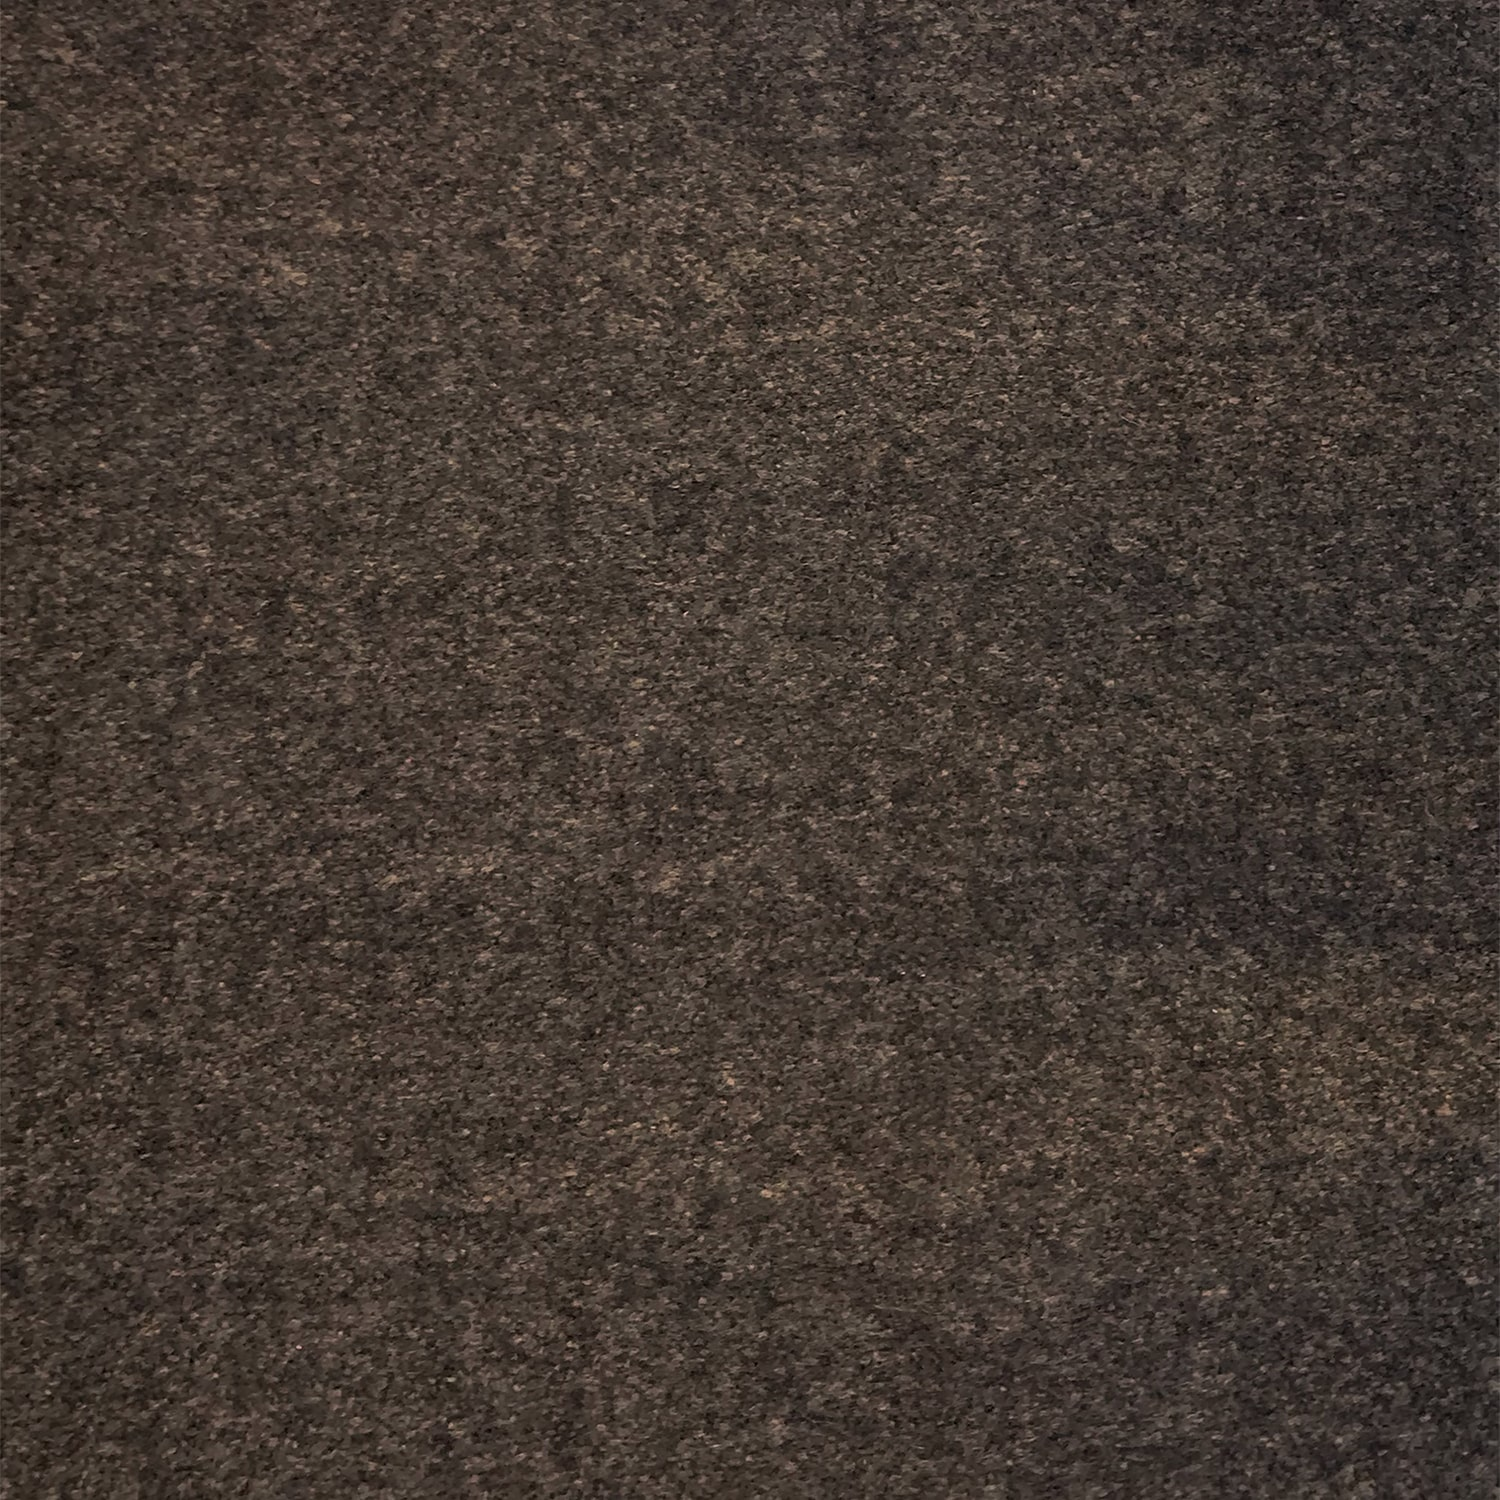 Clover Espresso (grade #1): CO-1-18<br>Cleans with water; flat heathered flannel texture